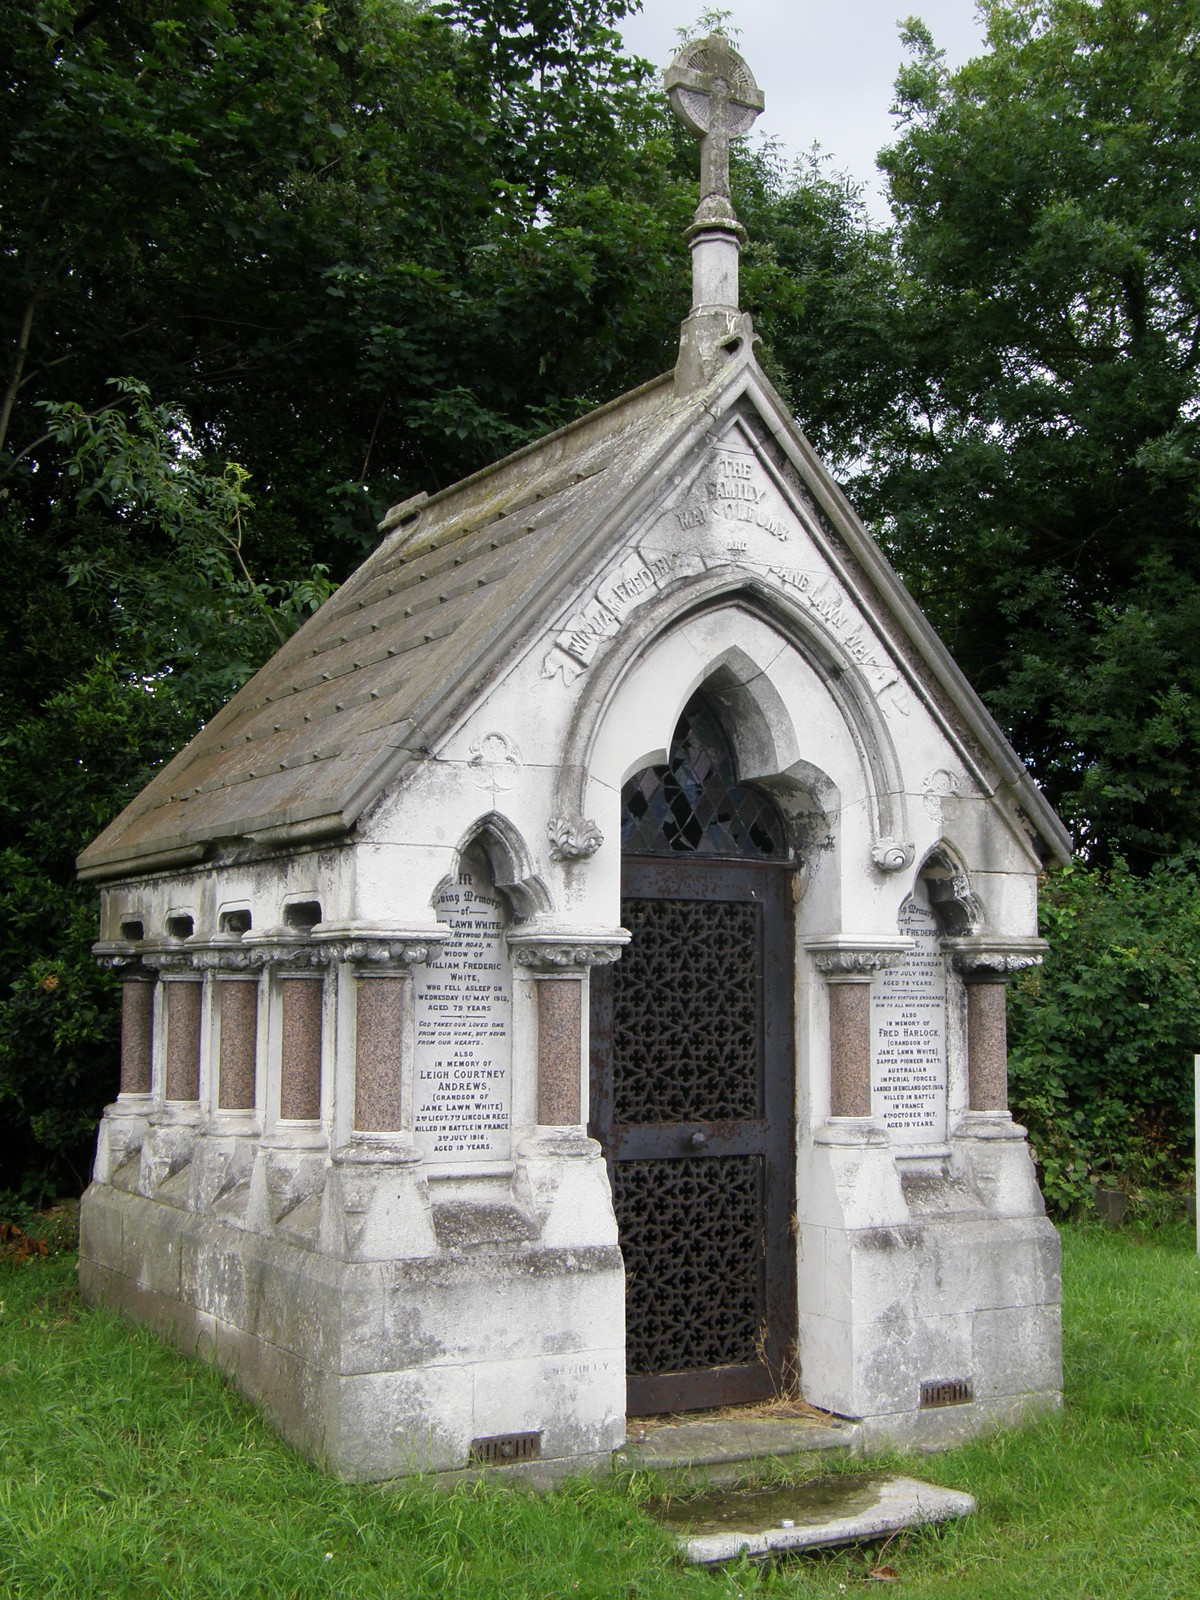 A mausoleum in St Pancras and Islington Cemetery